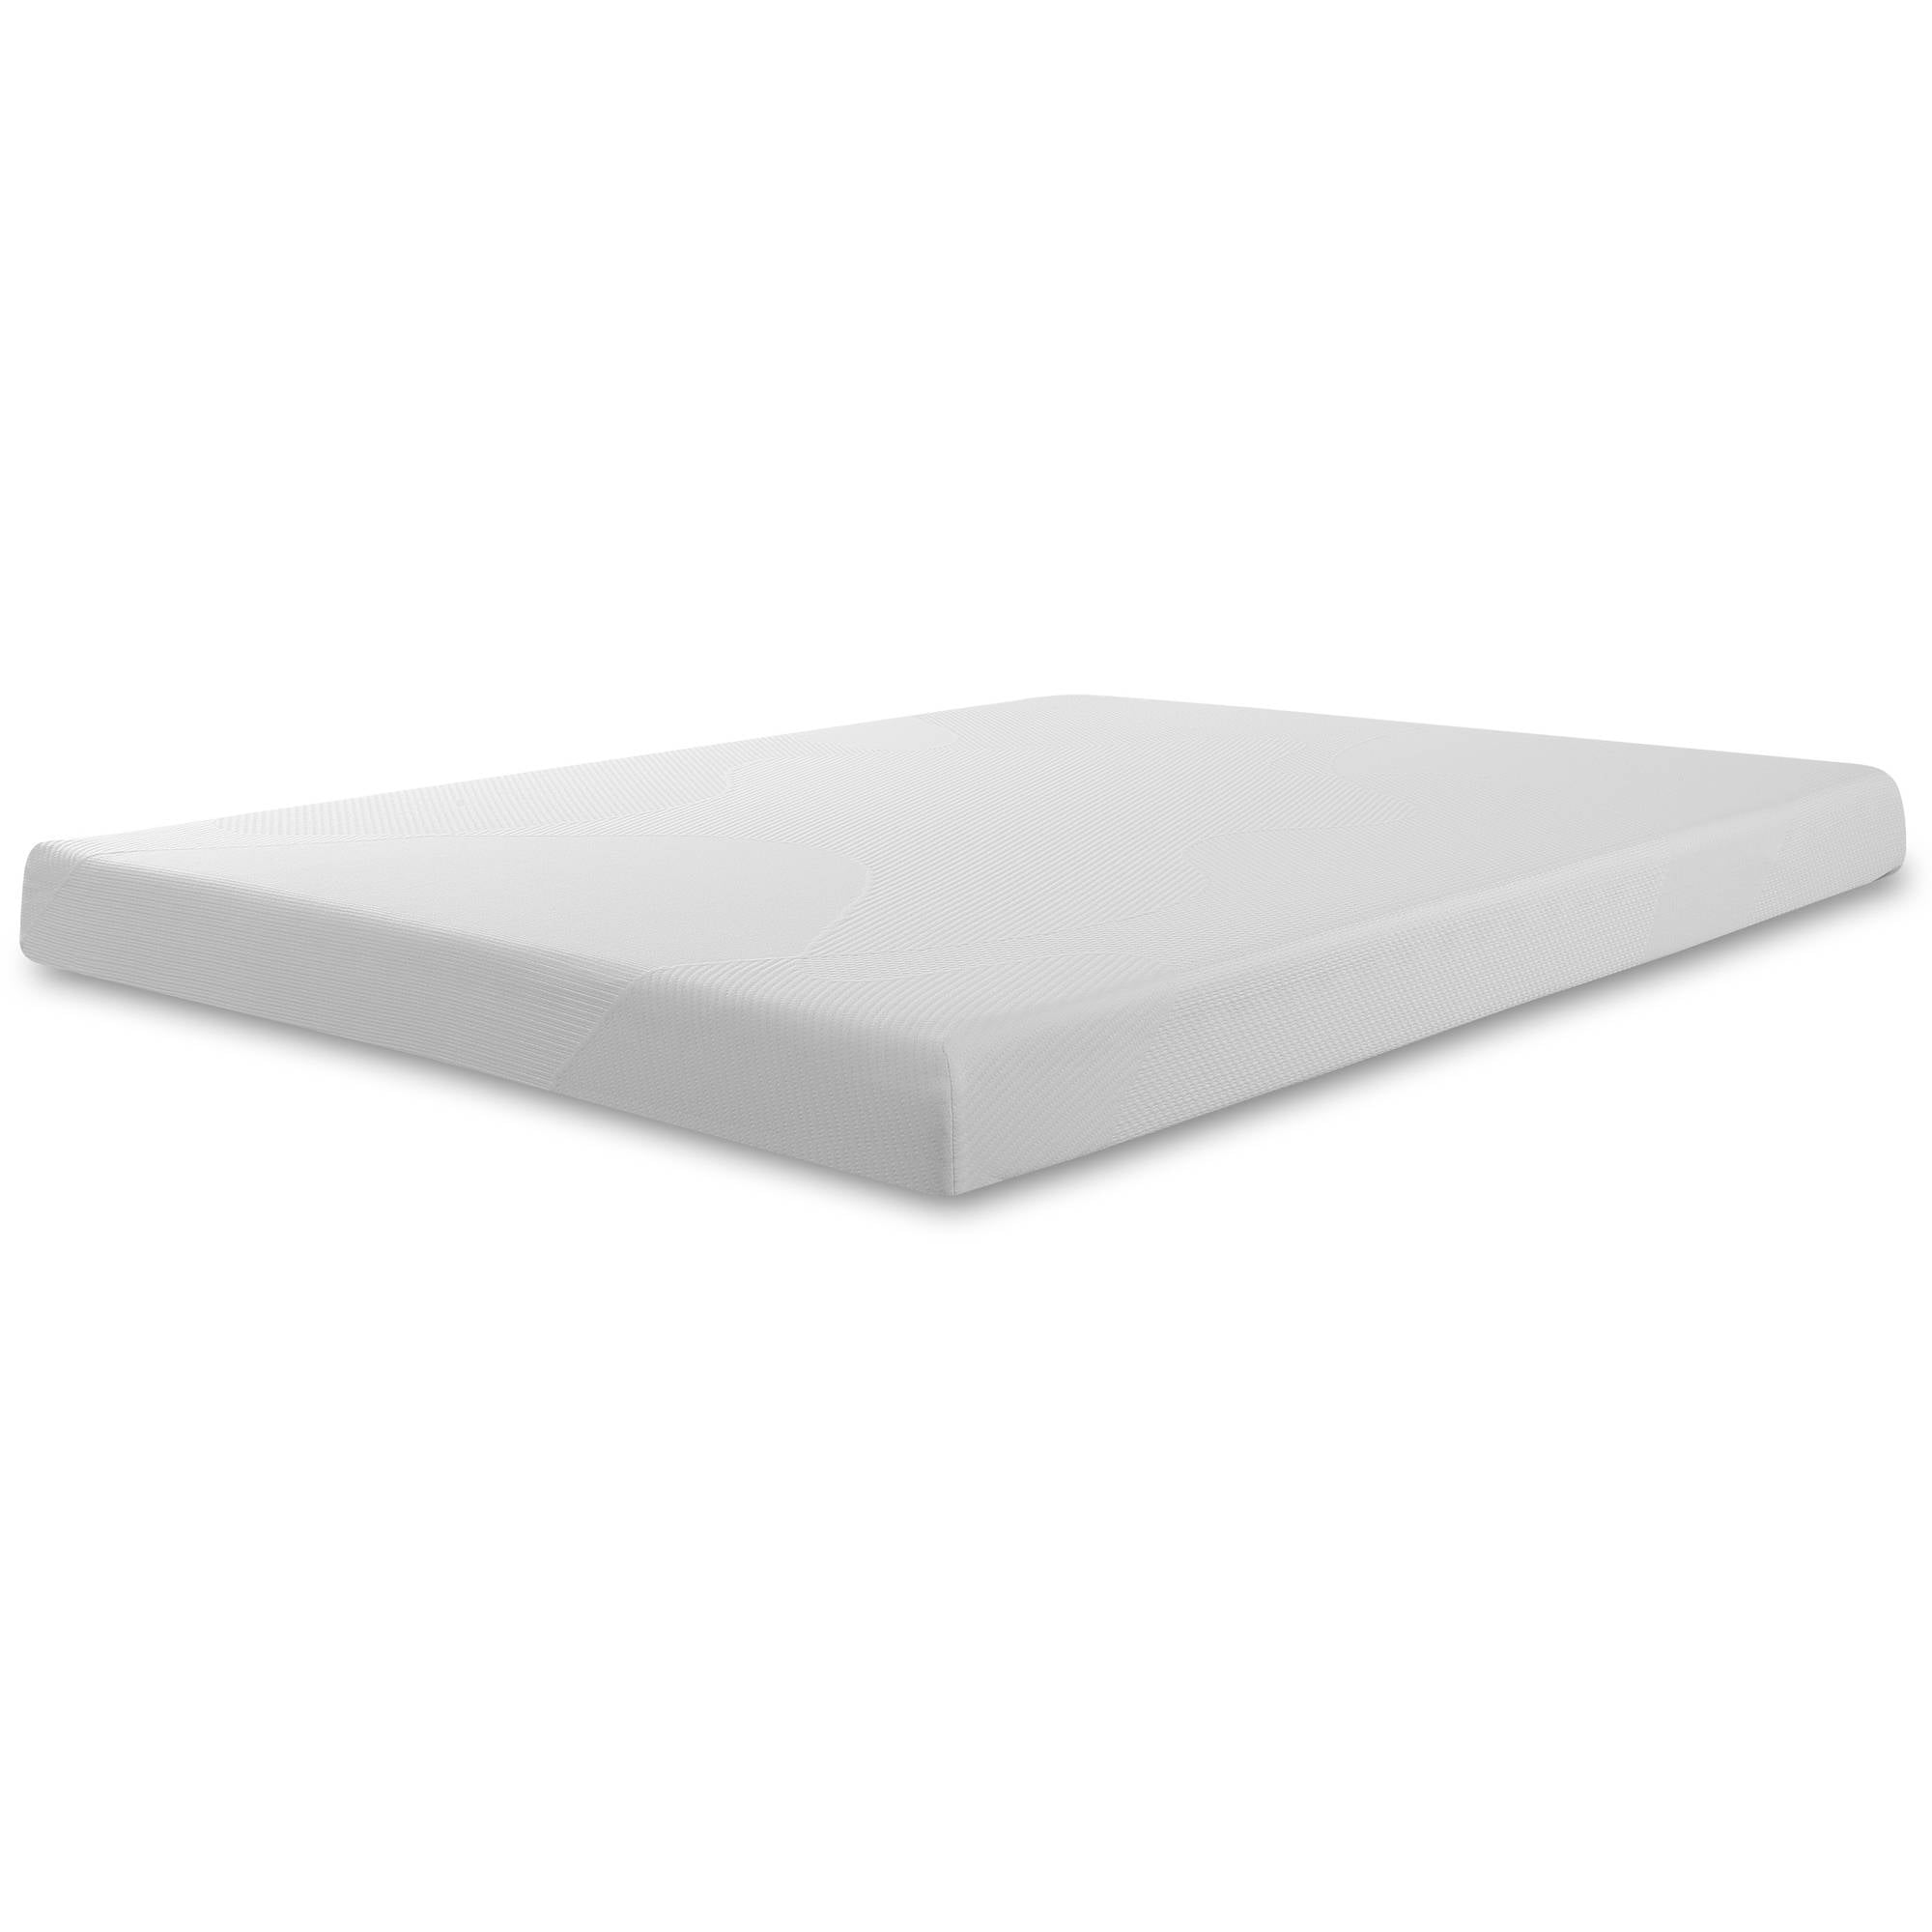 Spa sensation 6 39 39 memory foam mattress xl twin full queen king size firm bedroom ebay Mattress queen size